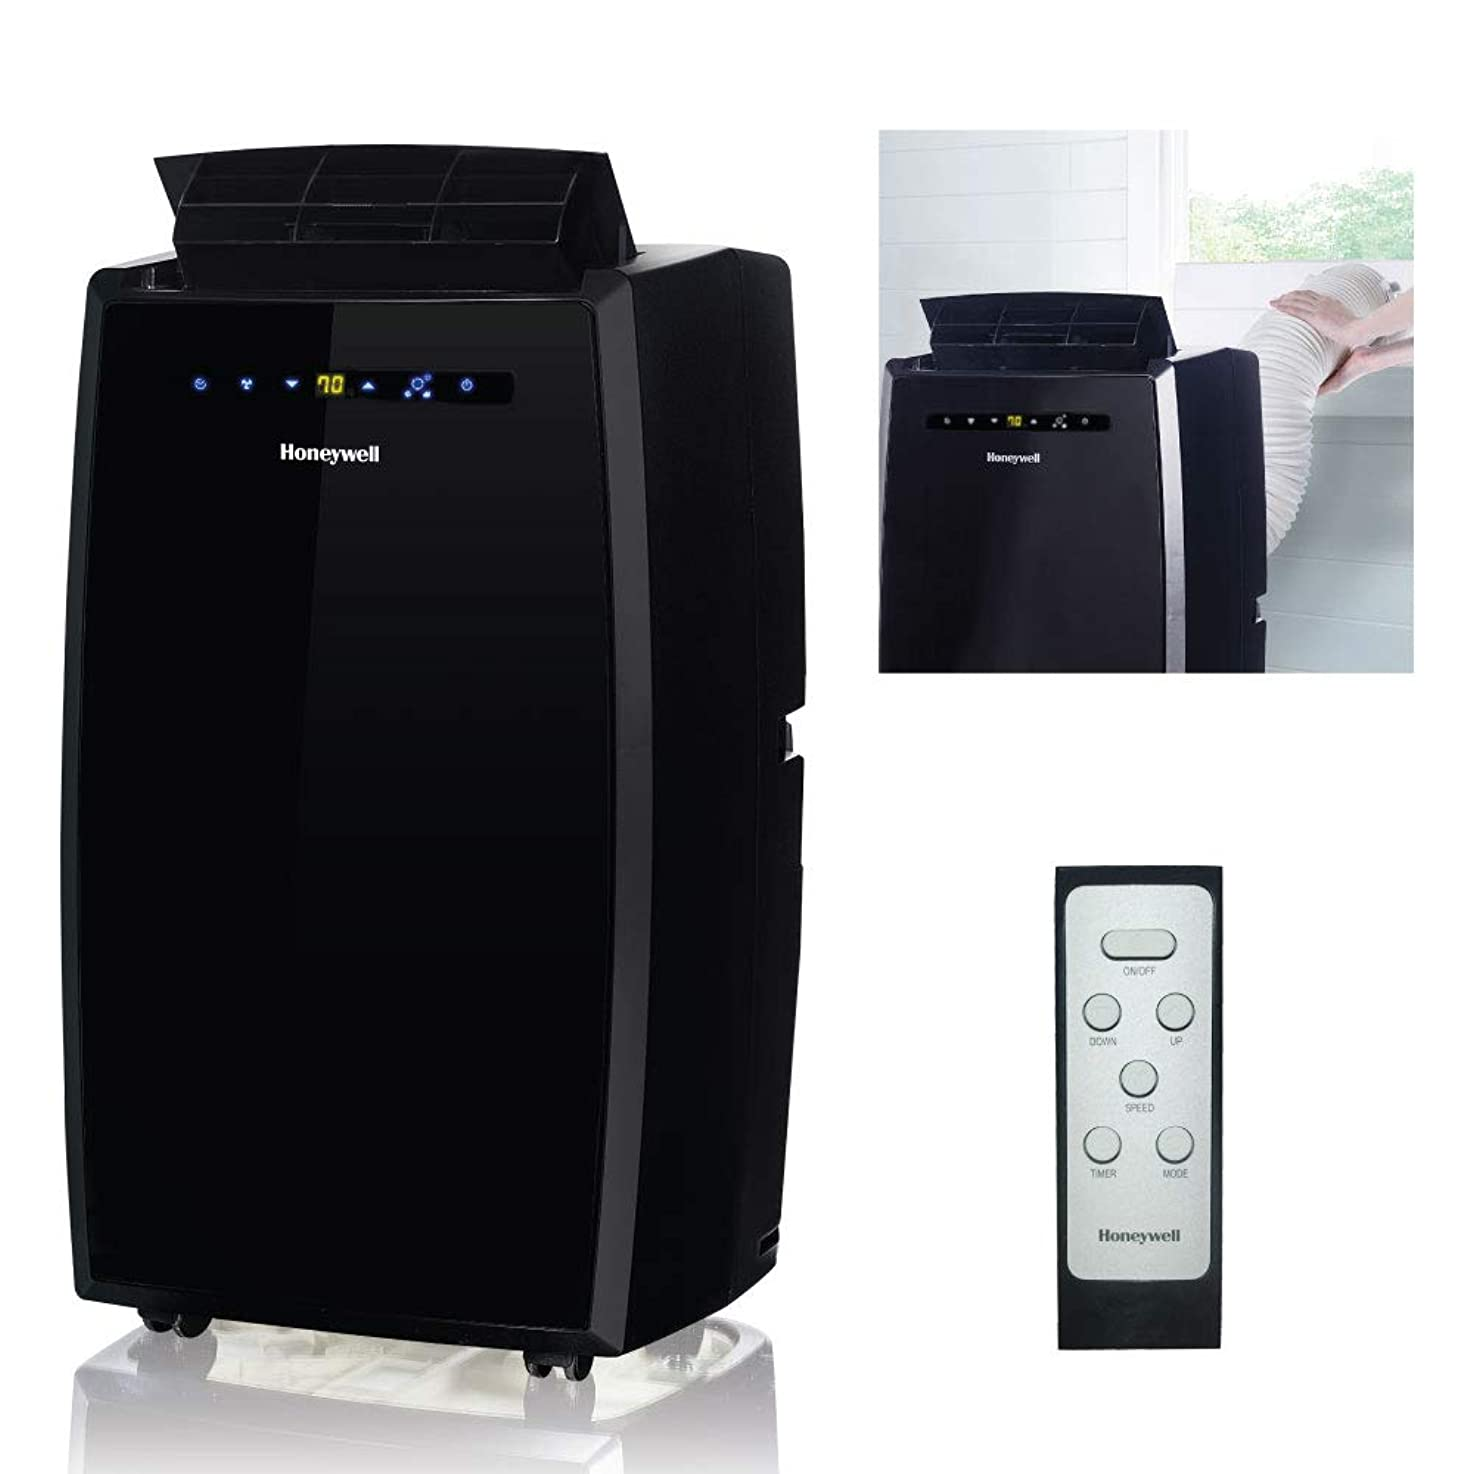 Honeywell MN12CESBB 12000 BTU Portable AC, Dehumidifier, Fan for Rooms Up To 400-550 Sq. Ft. with Thermal Overload Protection, Washable Air Filter & Remote Control iwxinvnykfnce5